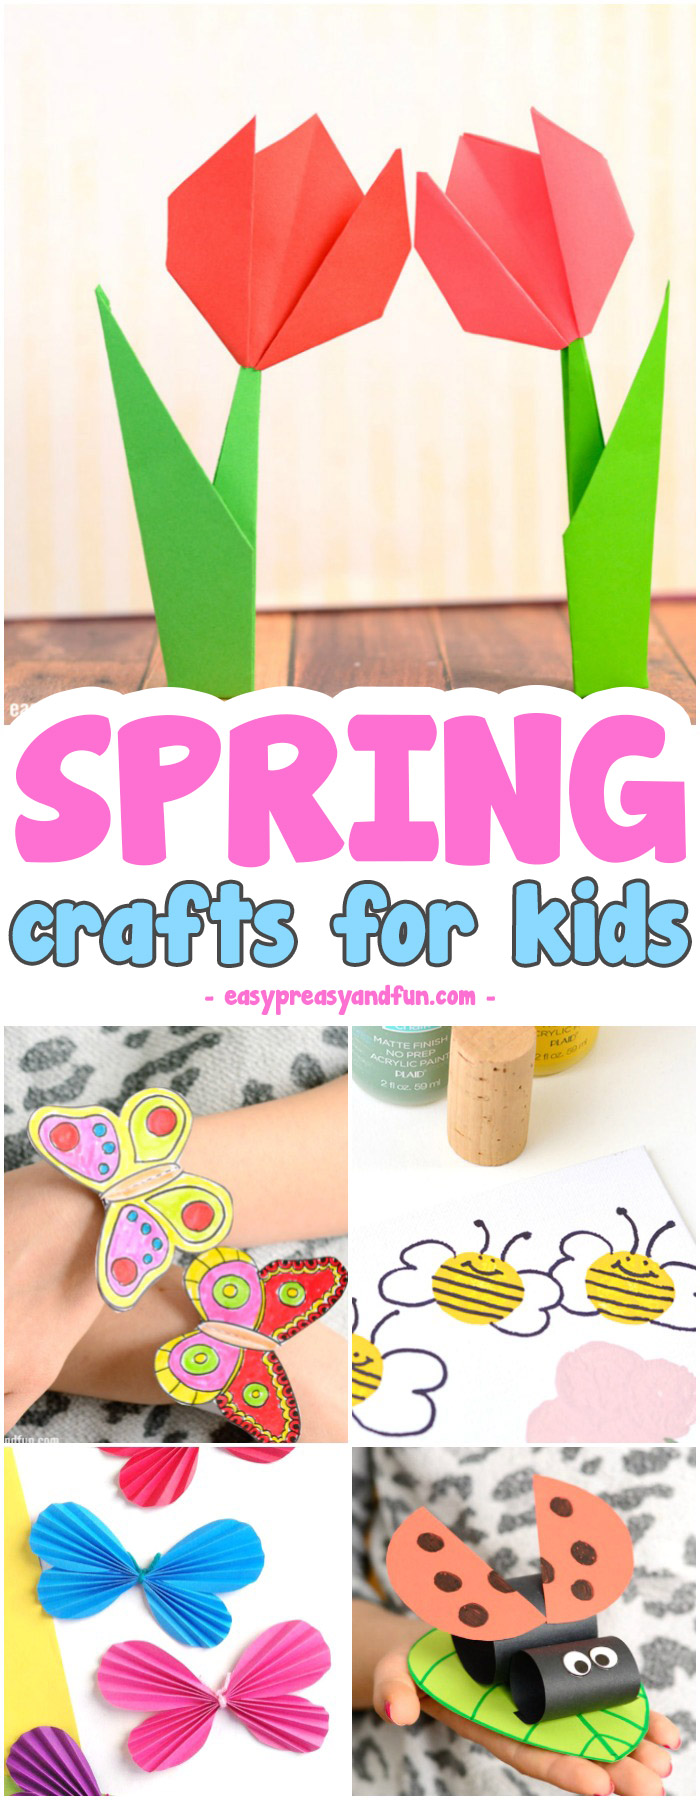 Art And Craft For Preschool Spring Crafts For Kids Art And Craft Project Ideas For All Ages